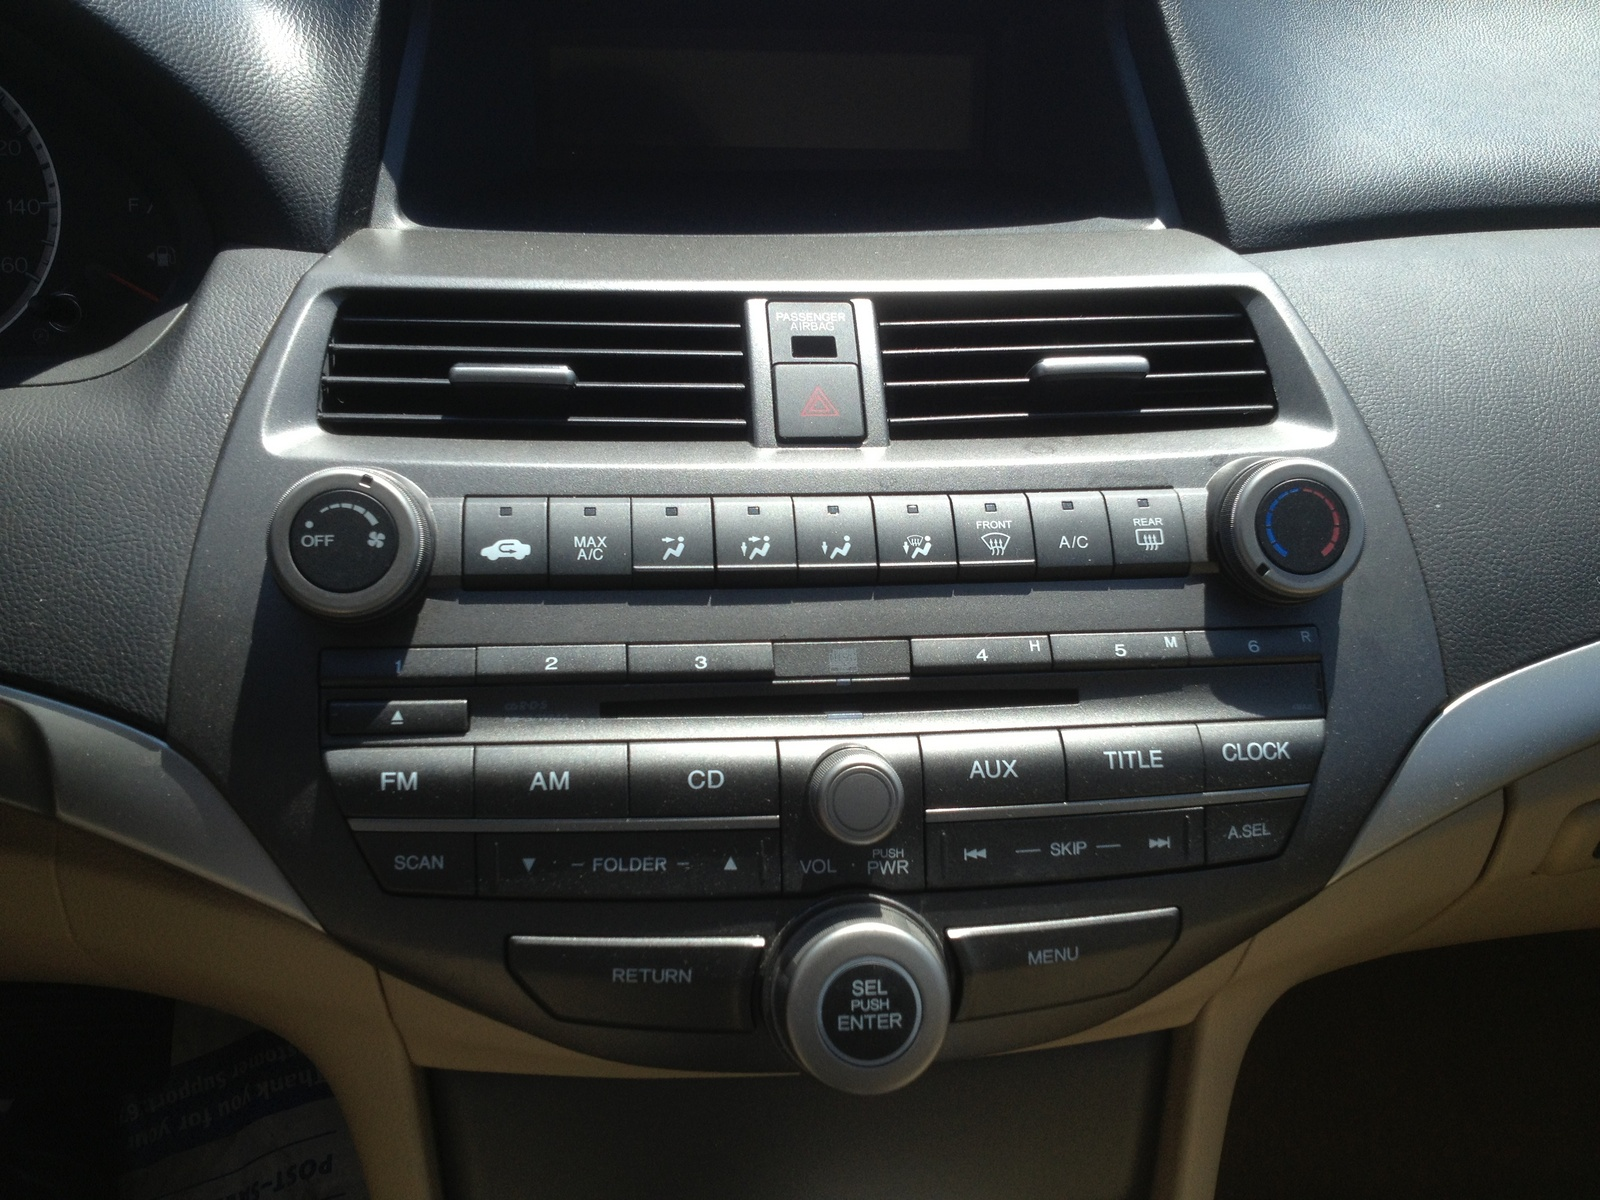 2012 Honda Accord LX picture, interior